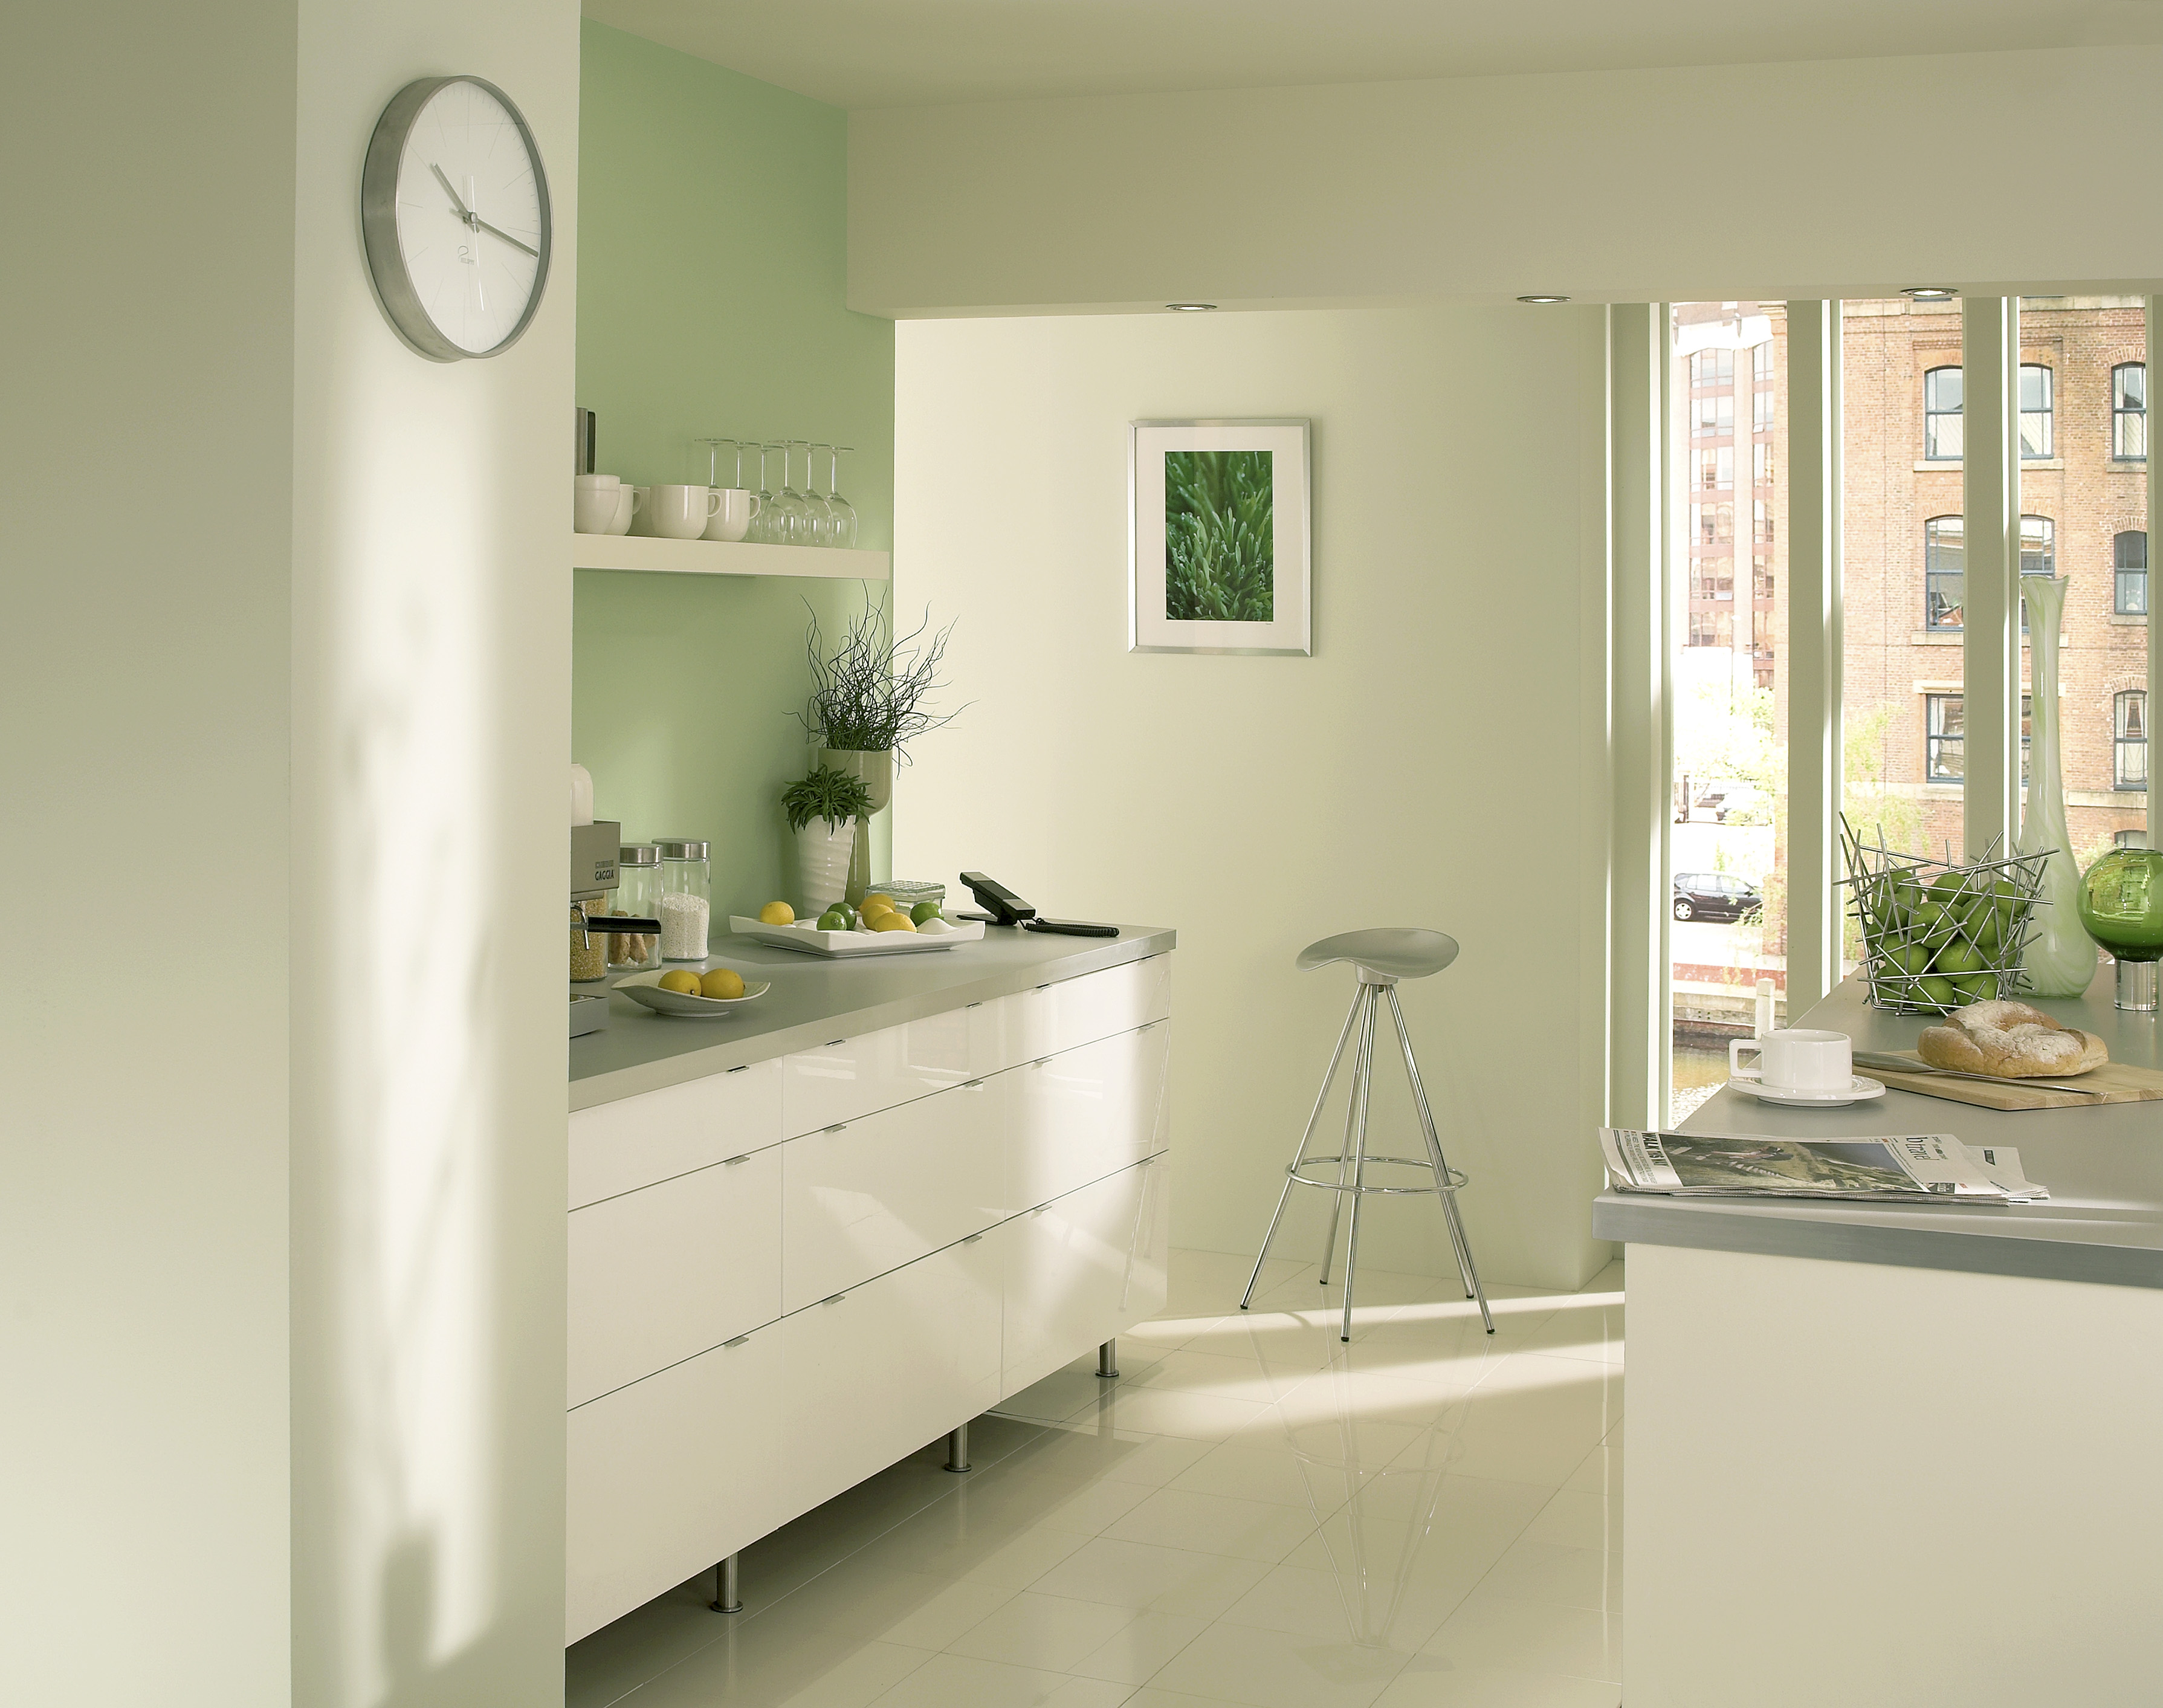 RS826 Kitchen 02 01b